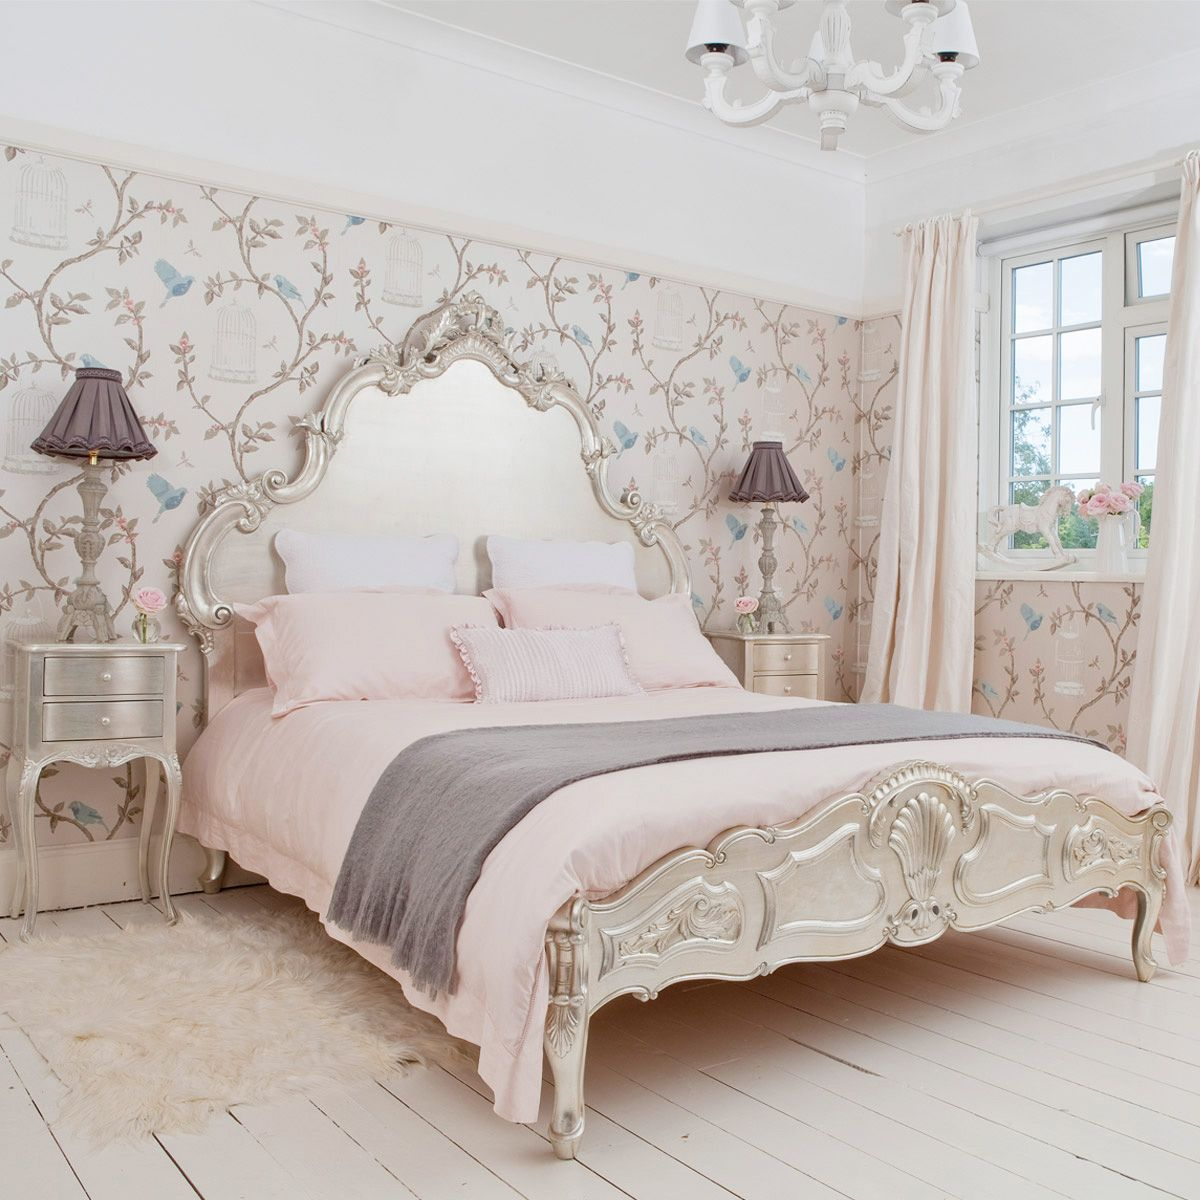 Bedroom Pretty French Theme Decorations Ideas Beautiful Country Furniture Sets With Fl Pattern Walpaper Also Cone Black Table